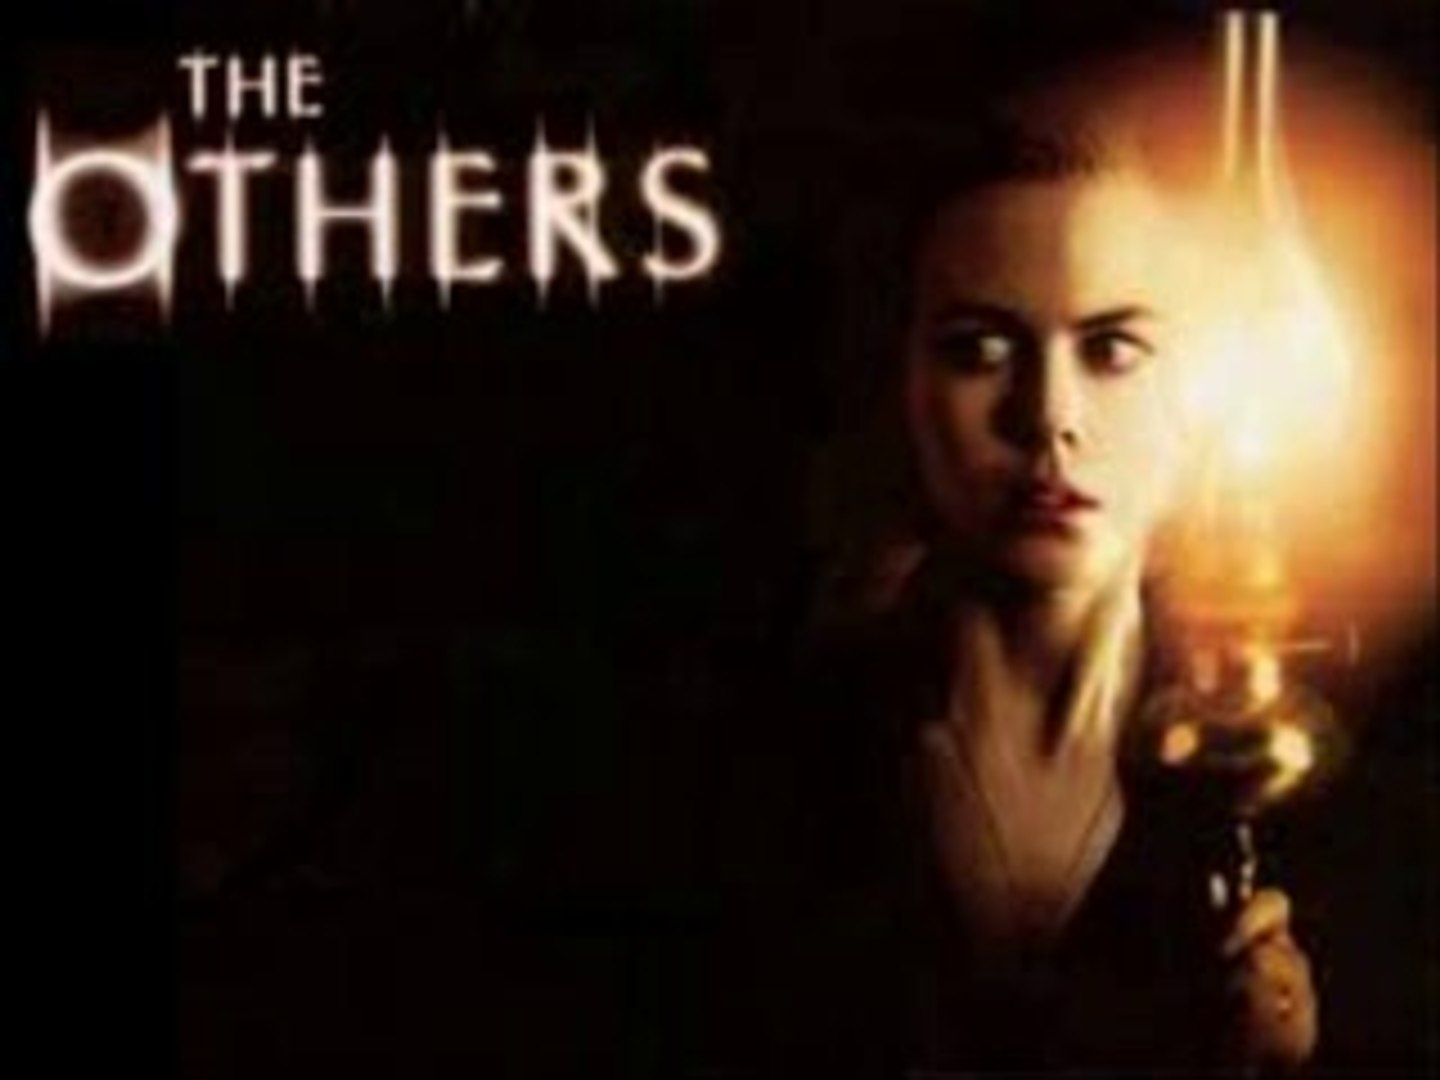 The Others (2001) Full Movie Streaming Online 1080p HD